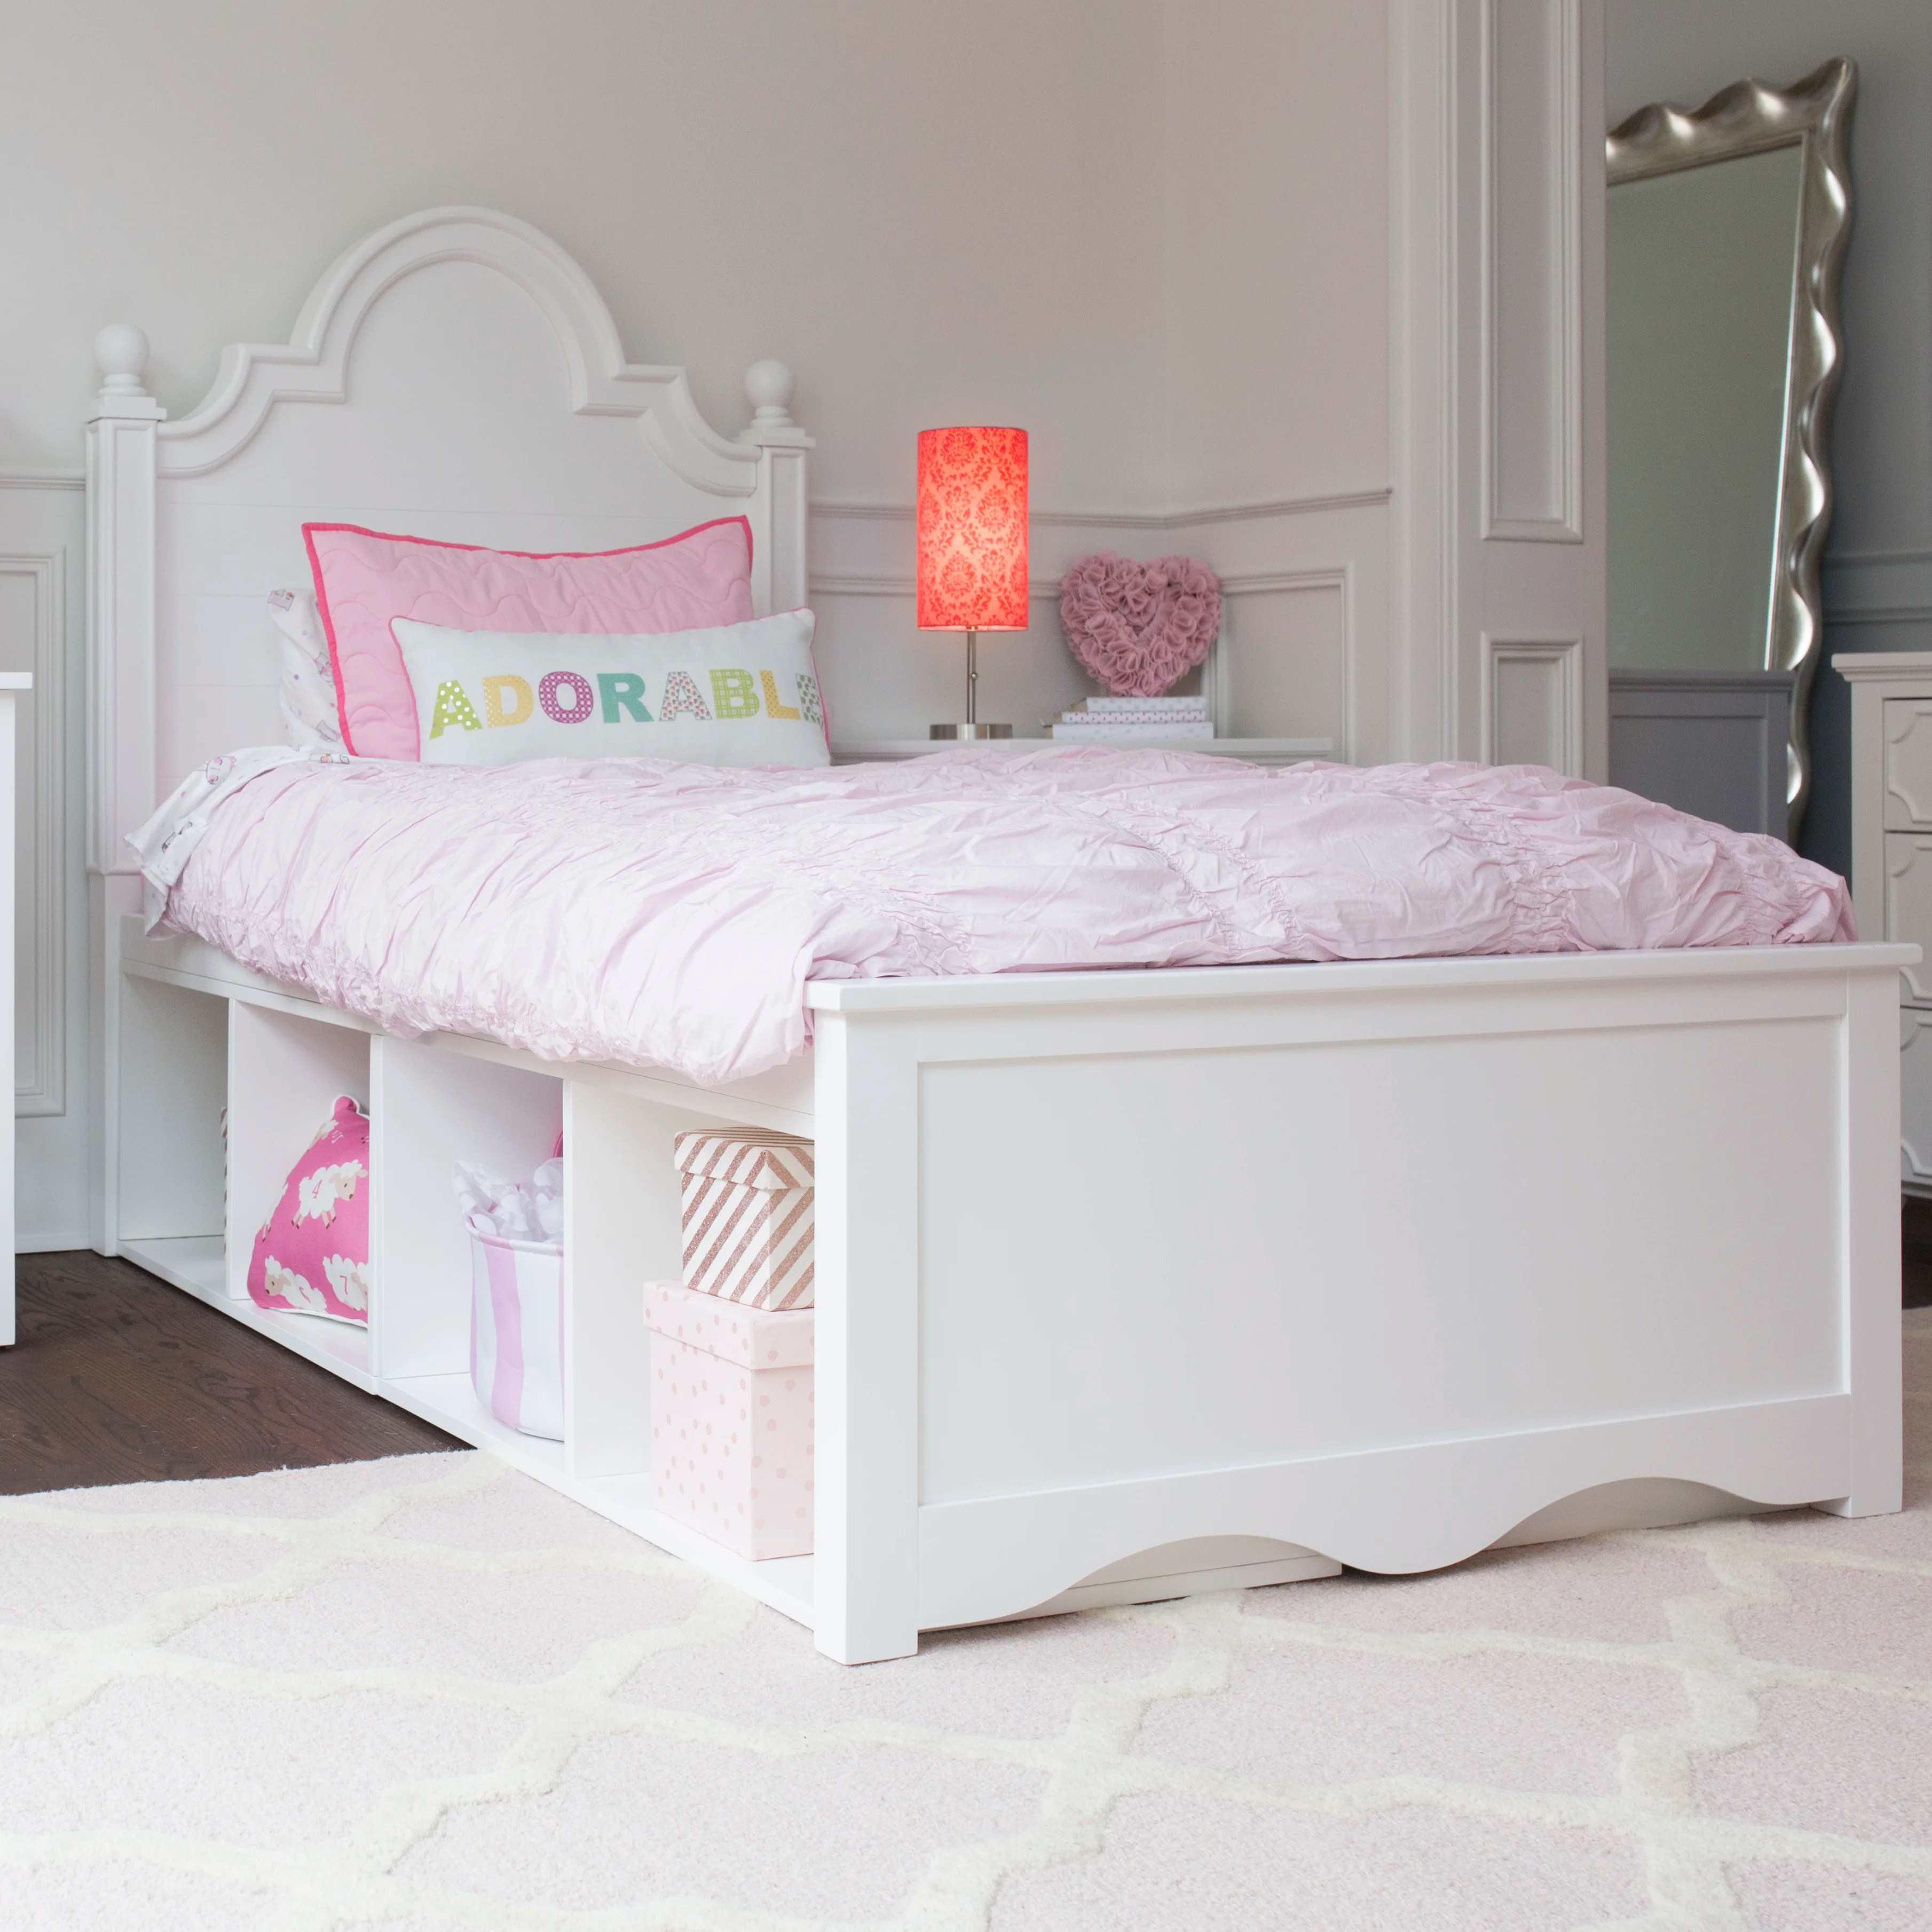 bedroom chair adelaide maccabee chairs website craft kids furniture twin panel bed with storage